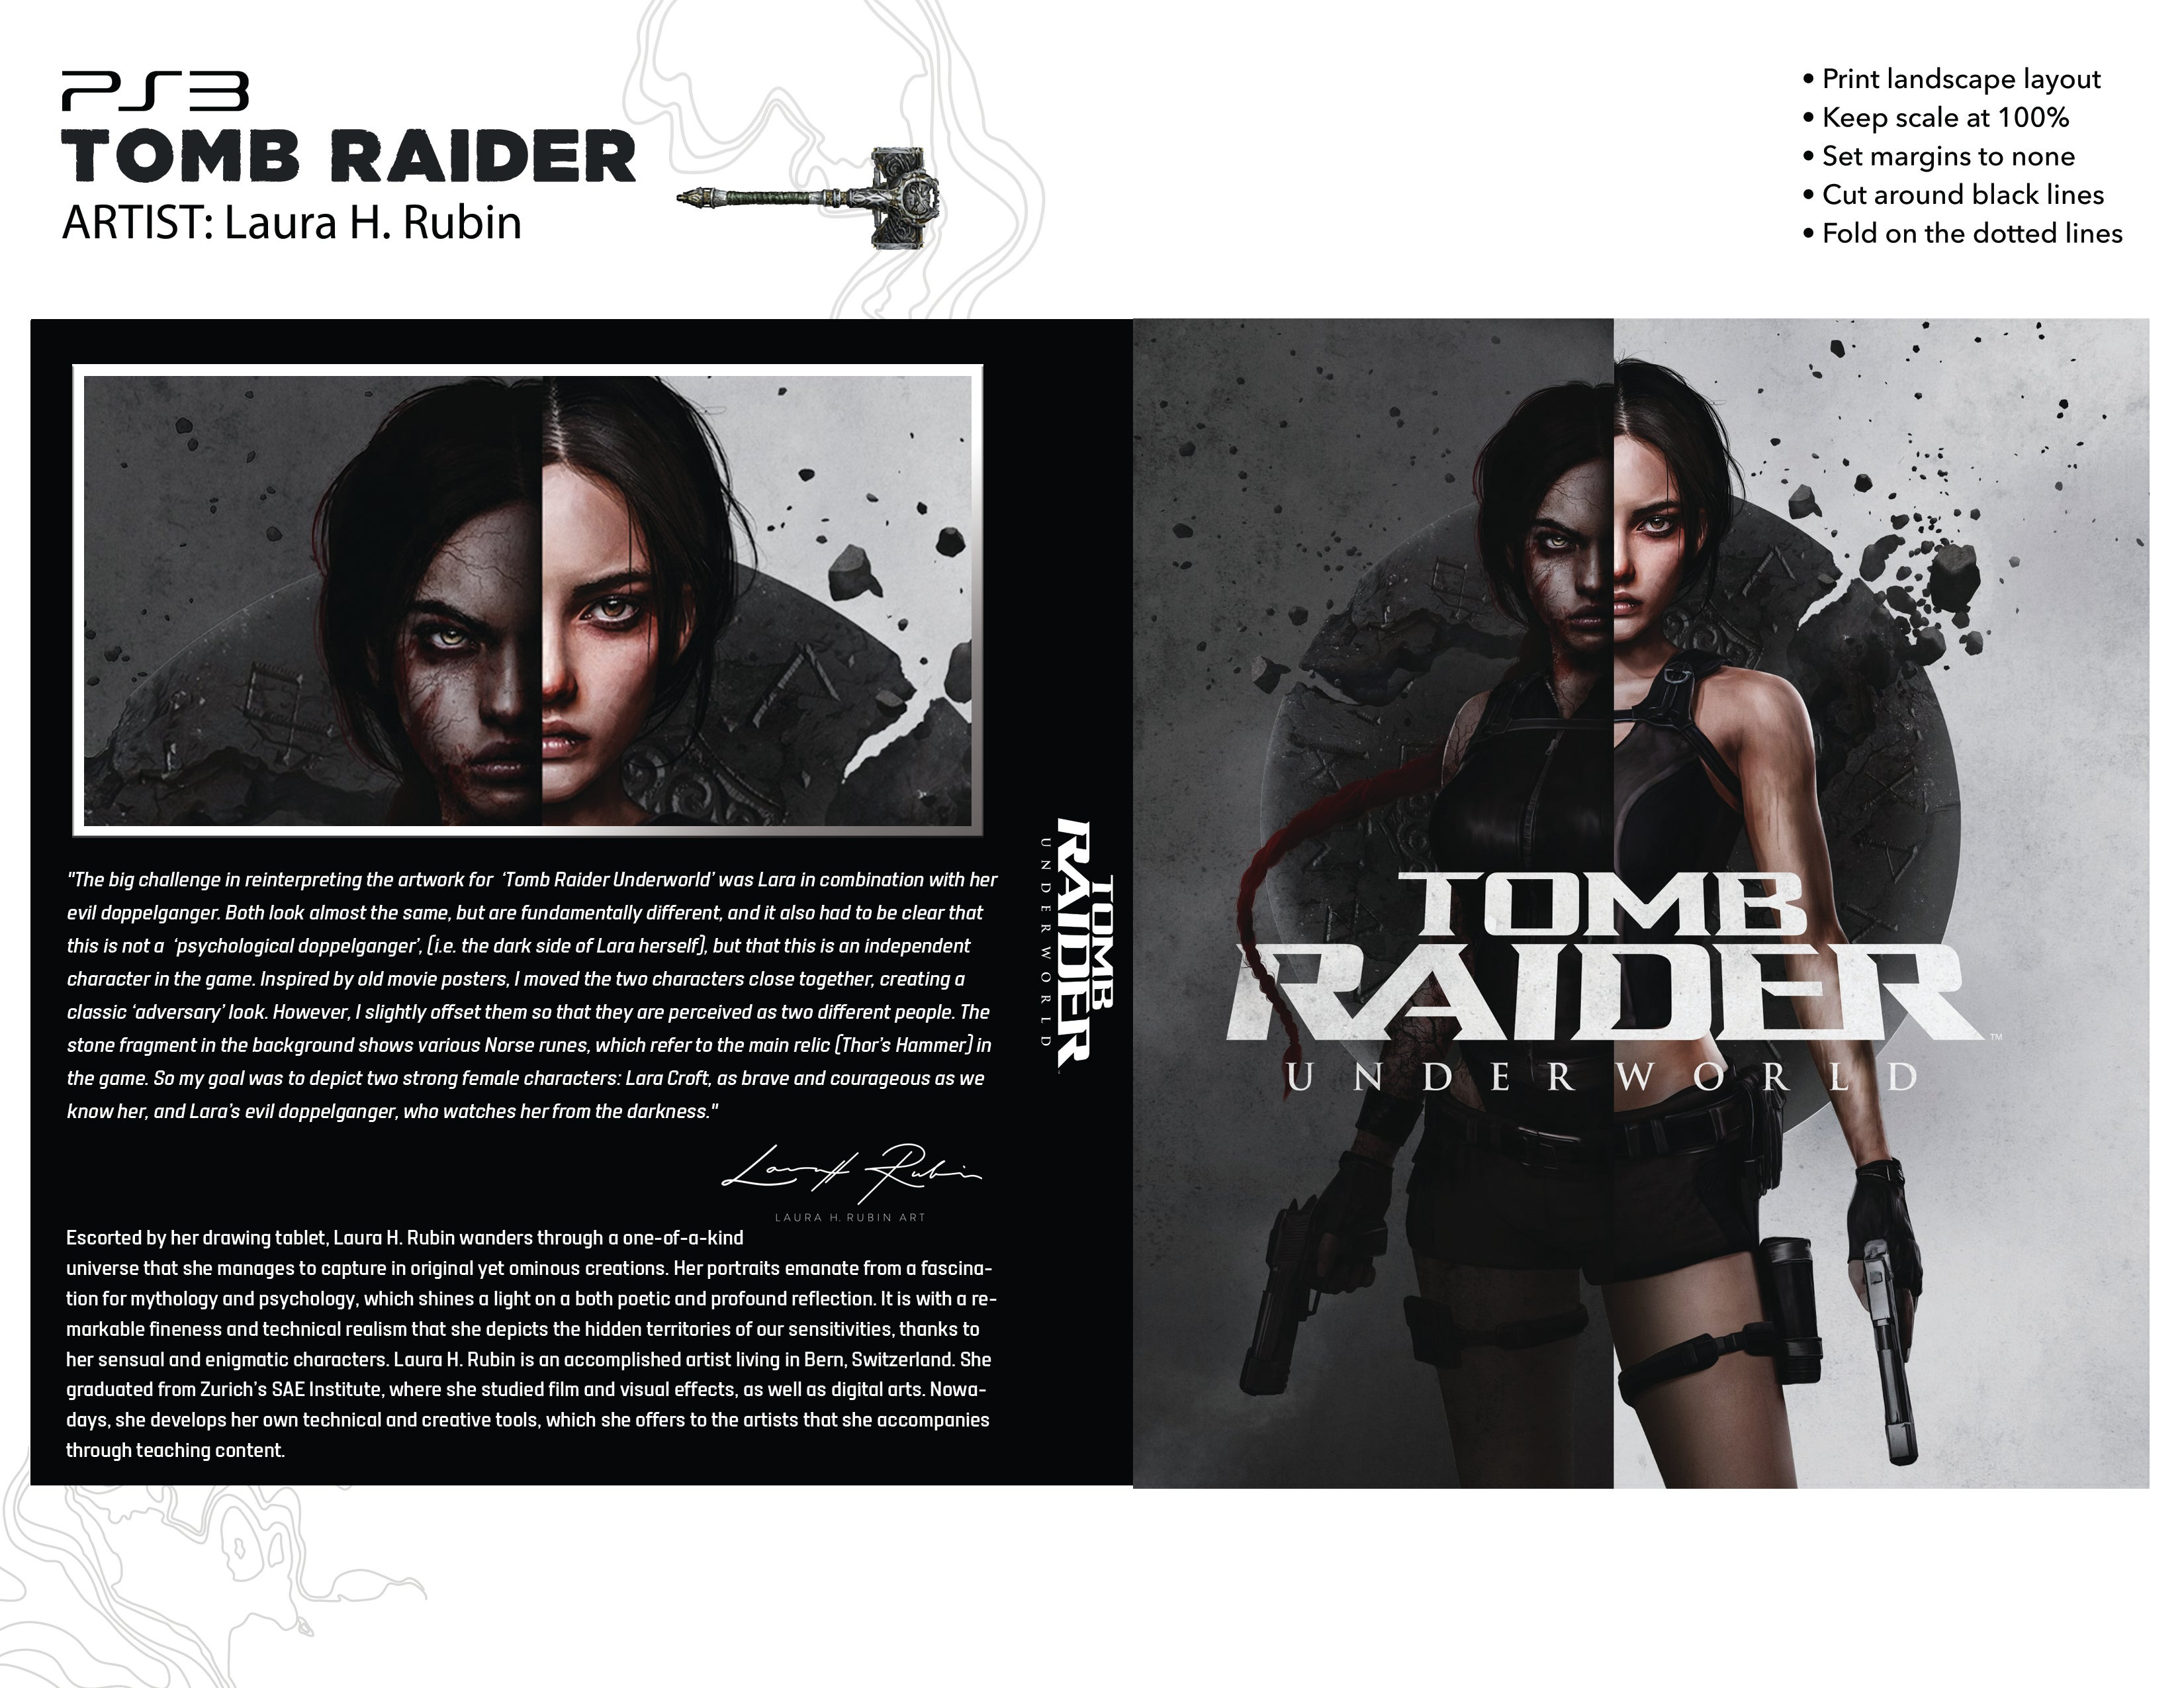 A PS3 case template for downloading Laura H. Rubin's reimagined art for Tomb Raider: Underworld